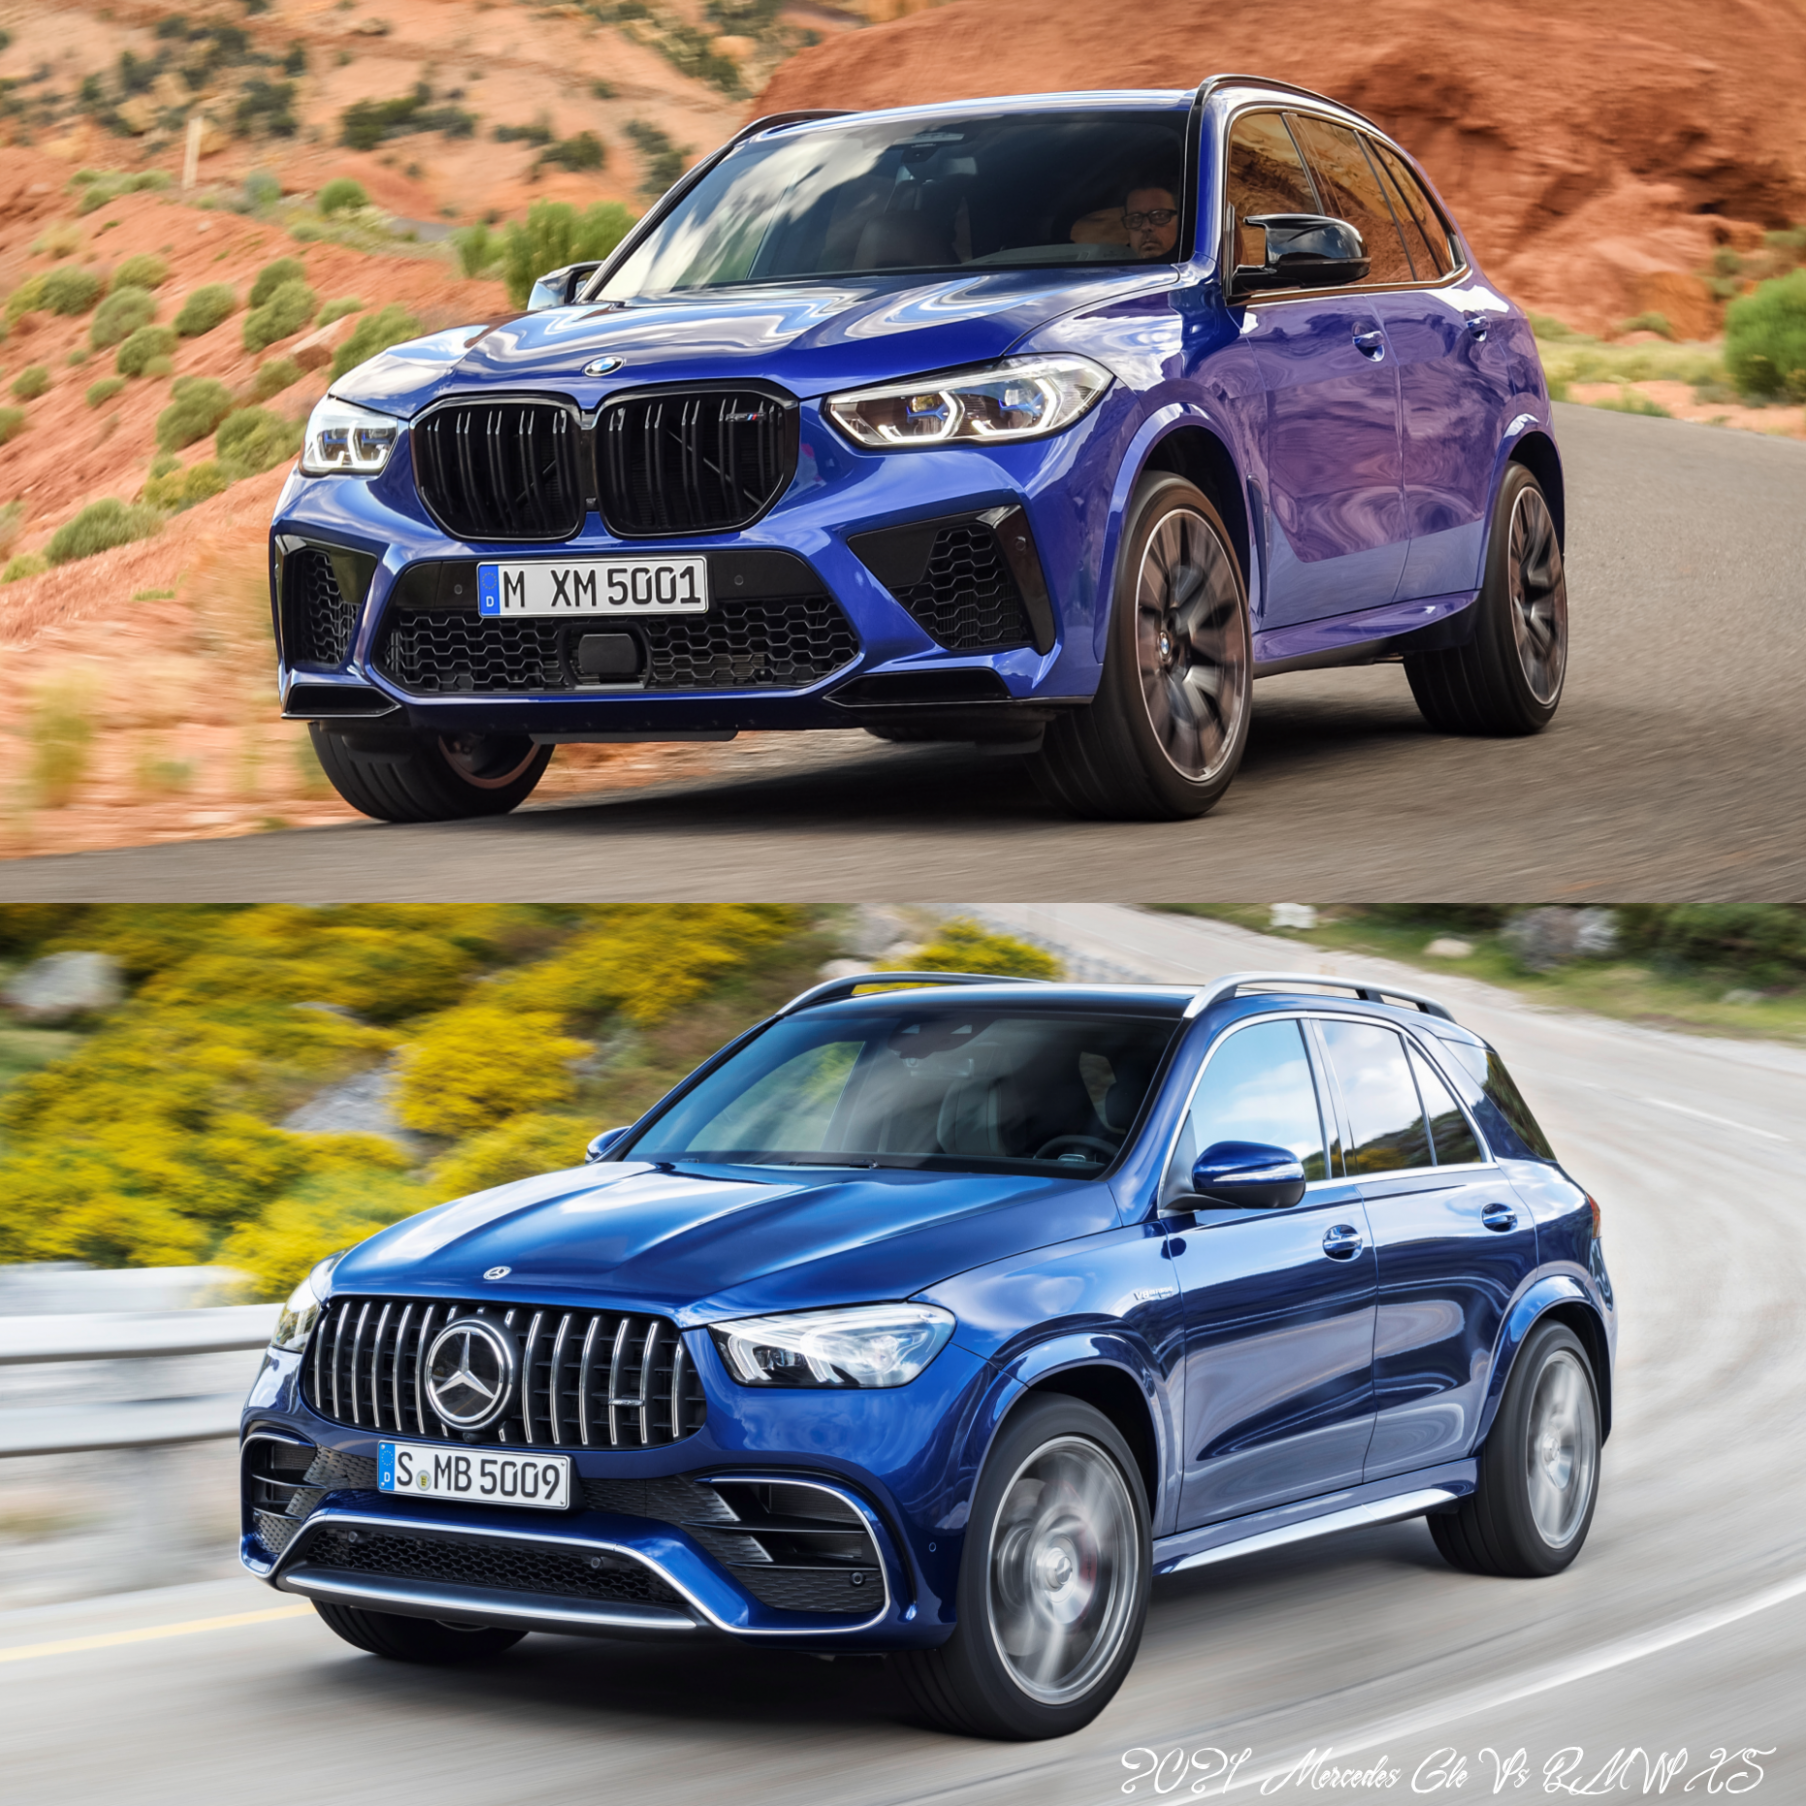 Configurations 2022 Gle Vs Volvo Xc90